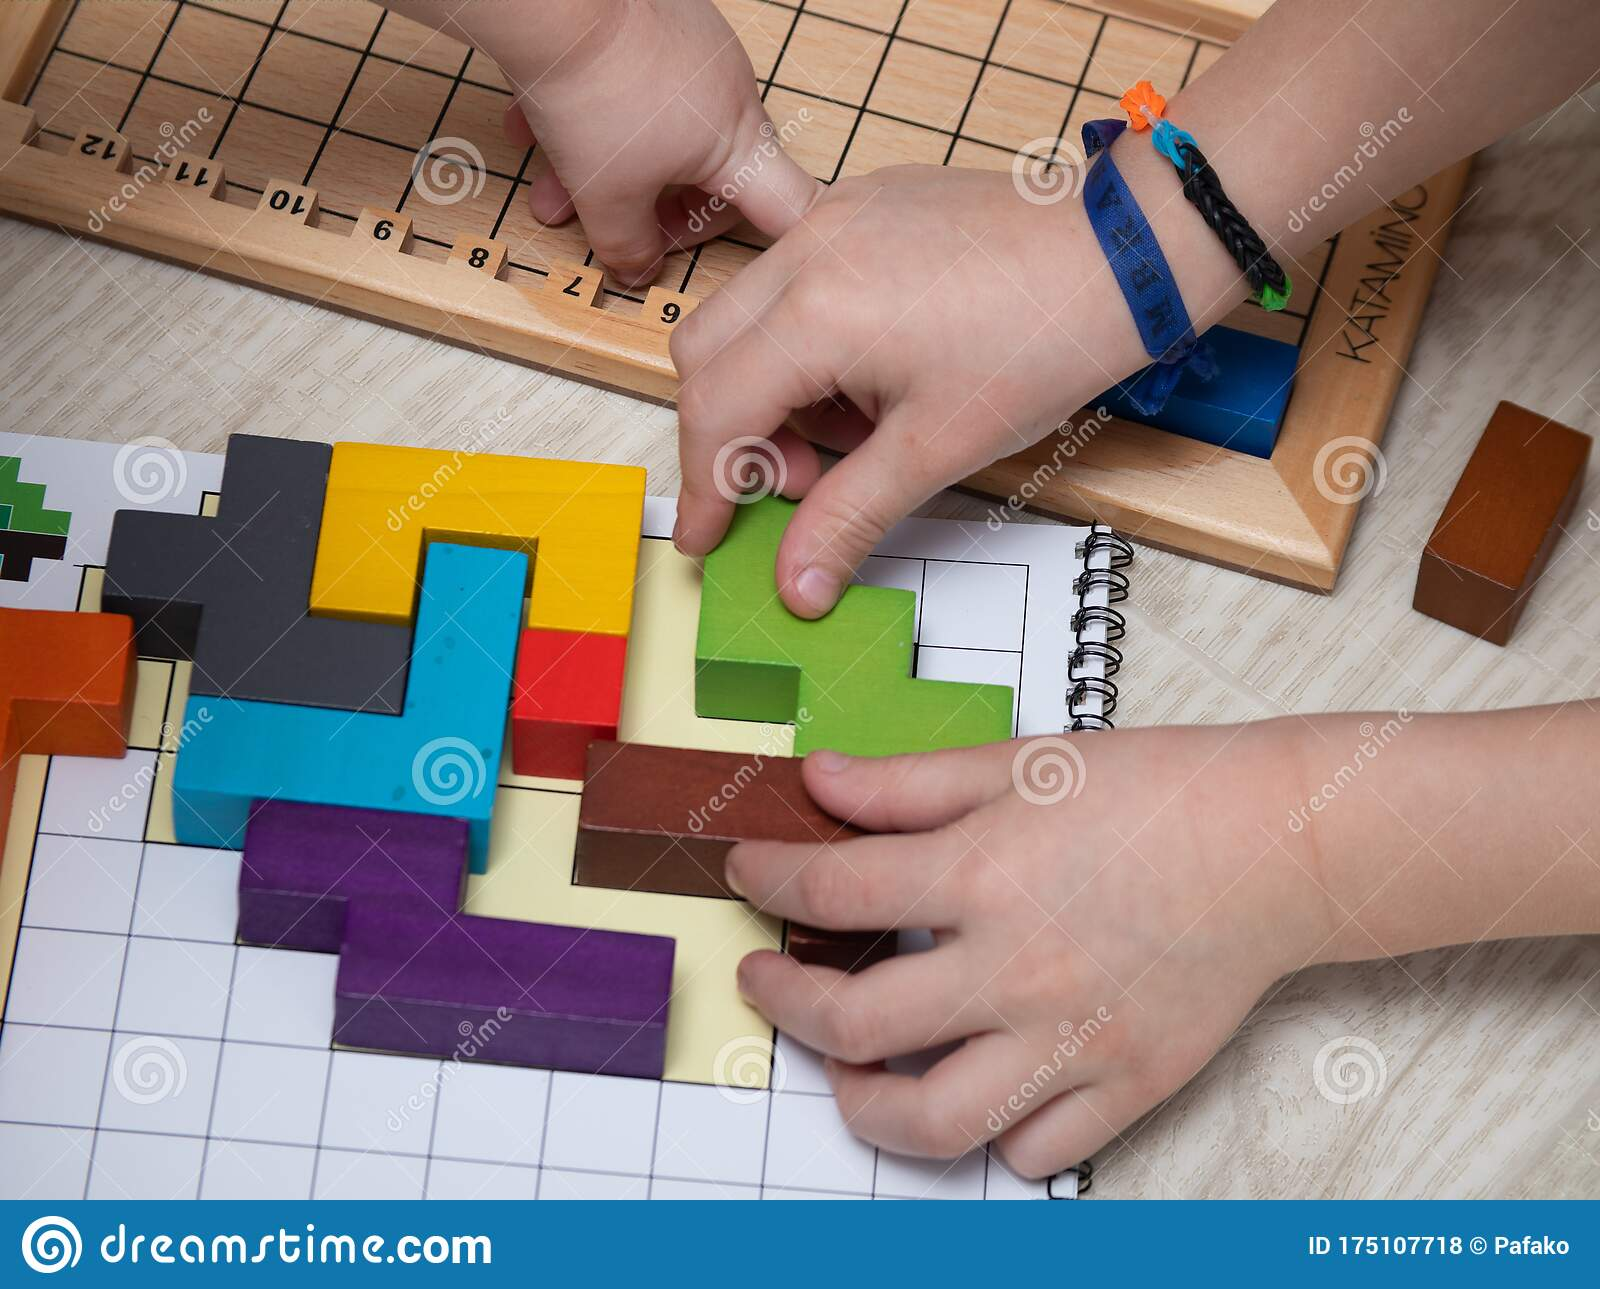 Moscow Russia March 3 2020 Katamino Is A Board Puzzle Game Children Play A Board Game Educational Games For Children Editorial Stock Photo Image Of Editorial Background 175107718